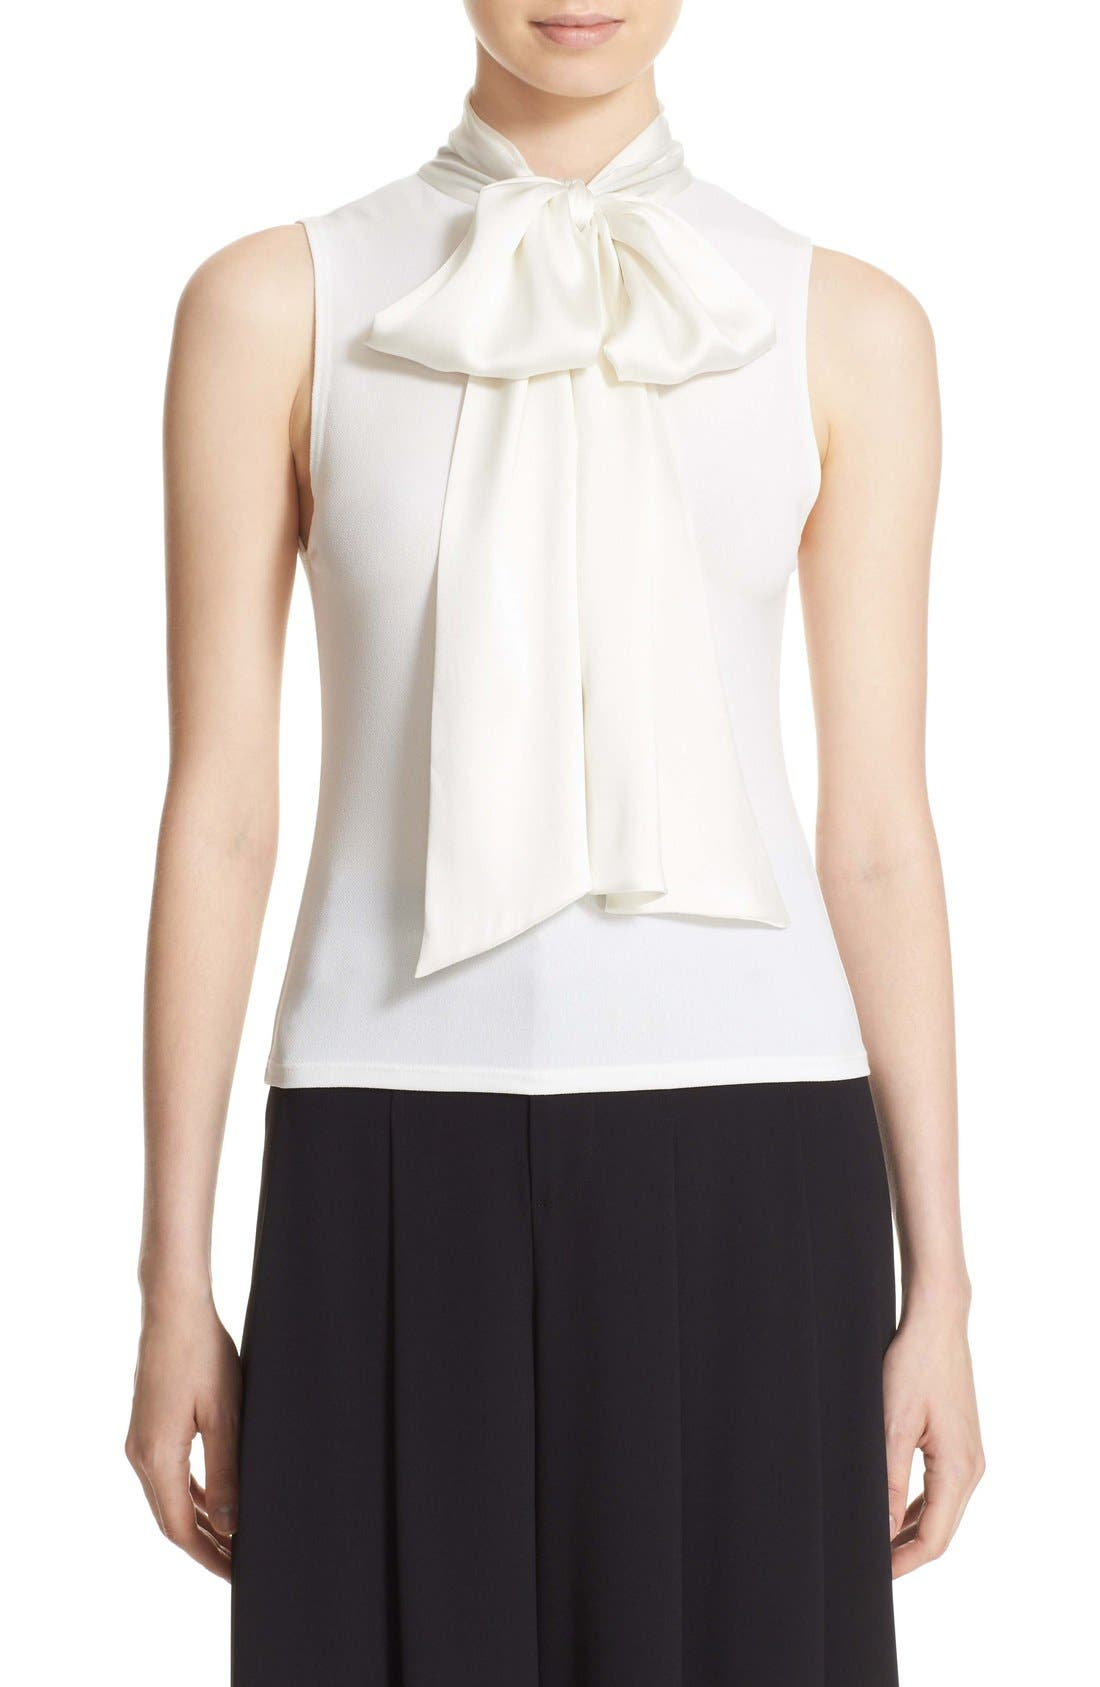 Alternate Image 1 Selected - Alice + Olivia 'Glynda' High Neck Sleeveless Blouse with Bow